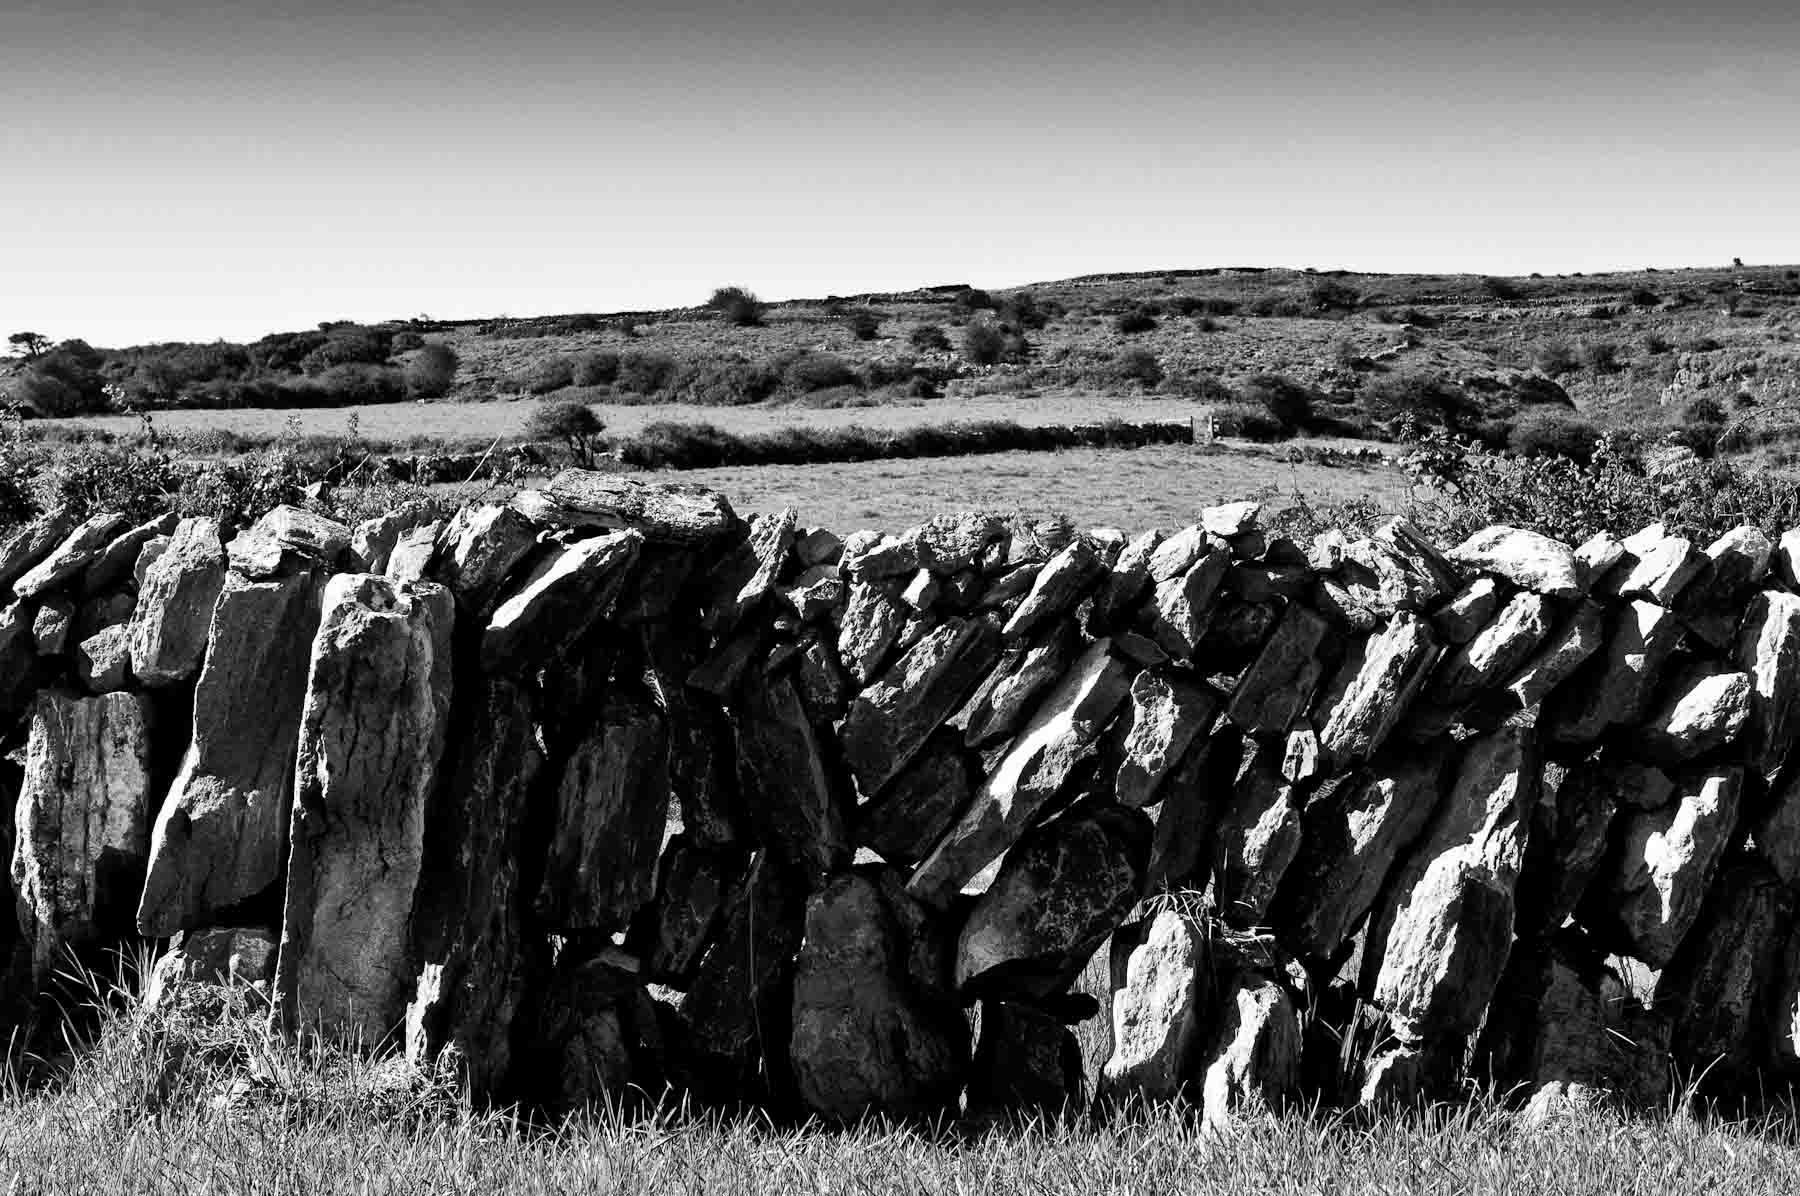 Loose rocks stacked to create a fence in Southern Ireland in 2009